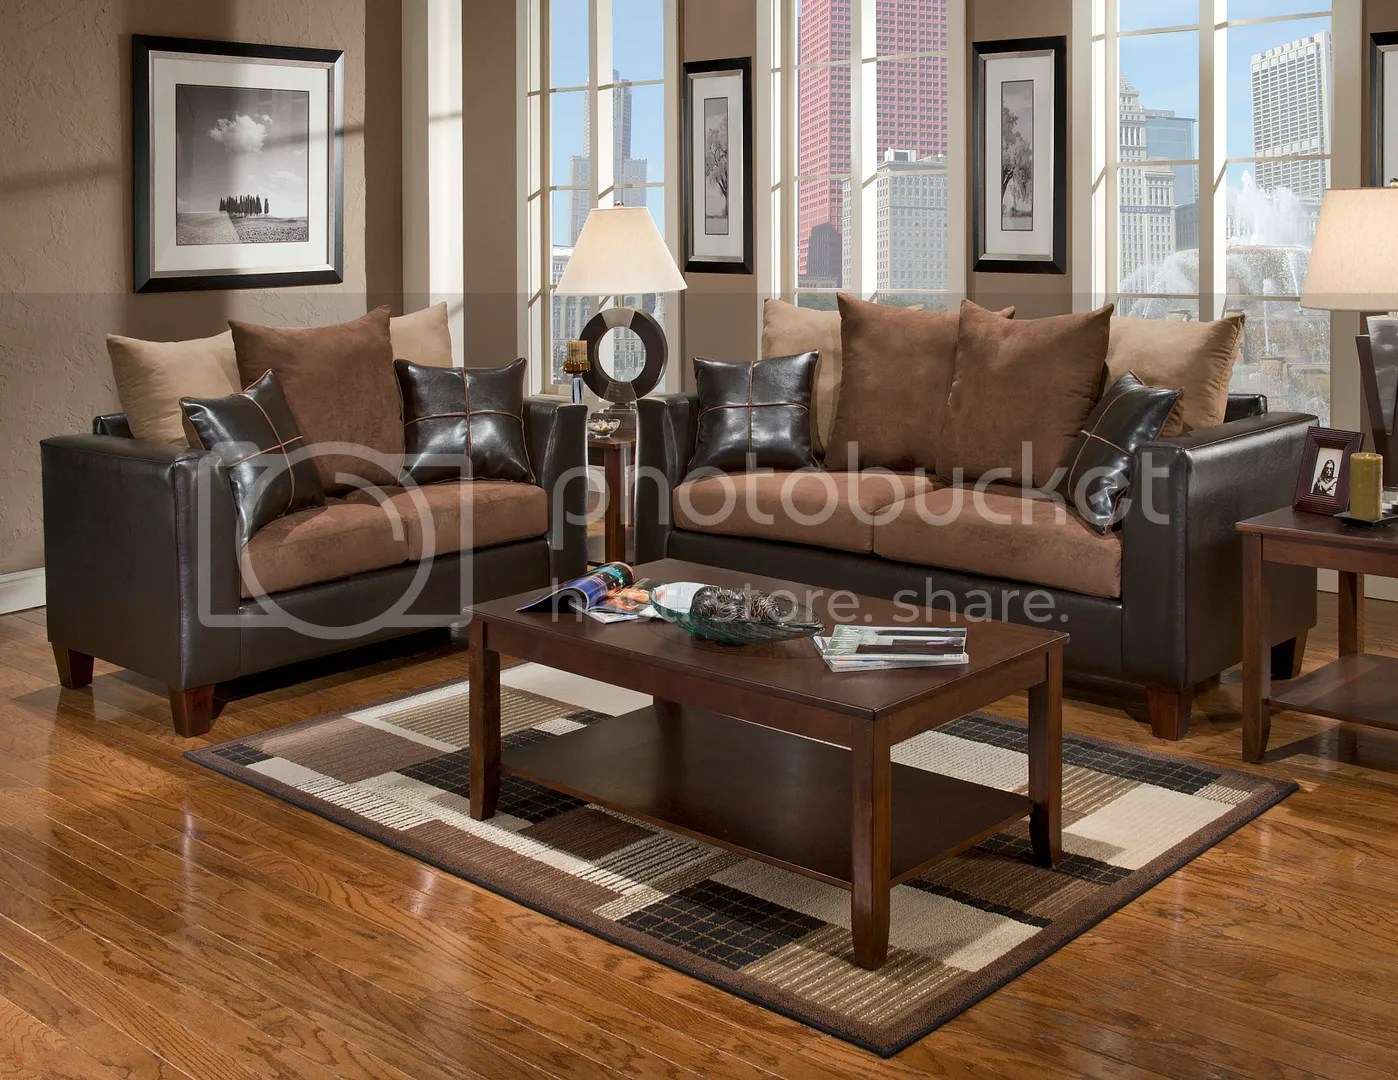 Casual Contemporary Chocolate Brown Sofa Love Seat Living